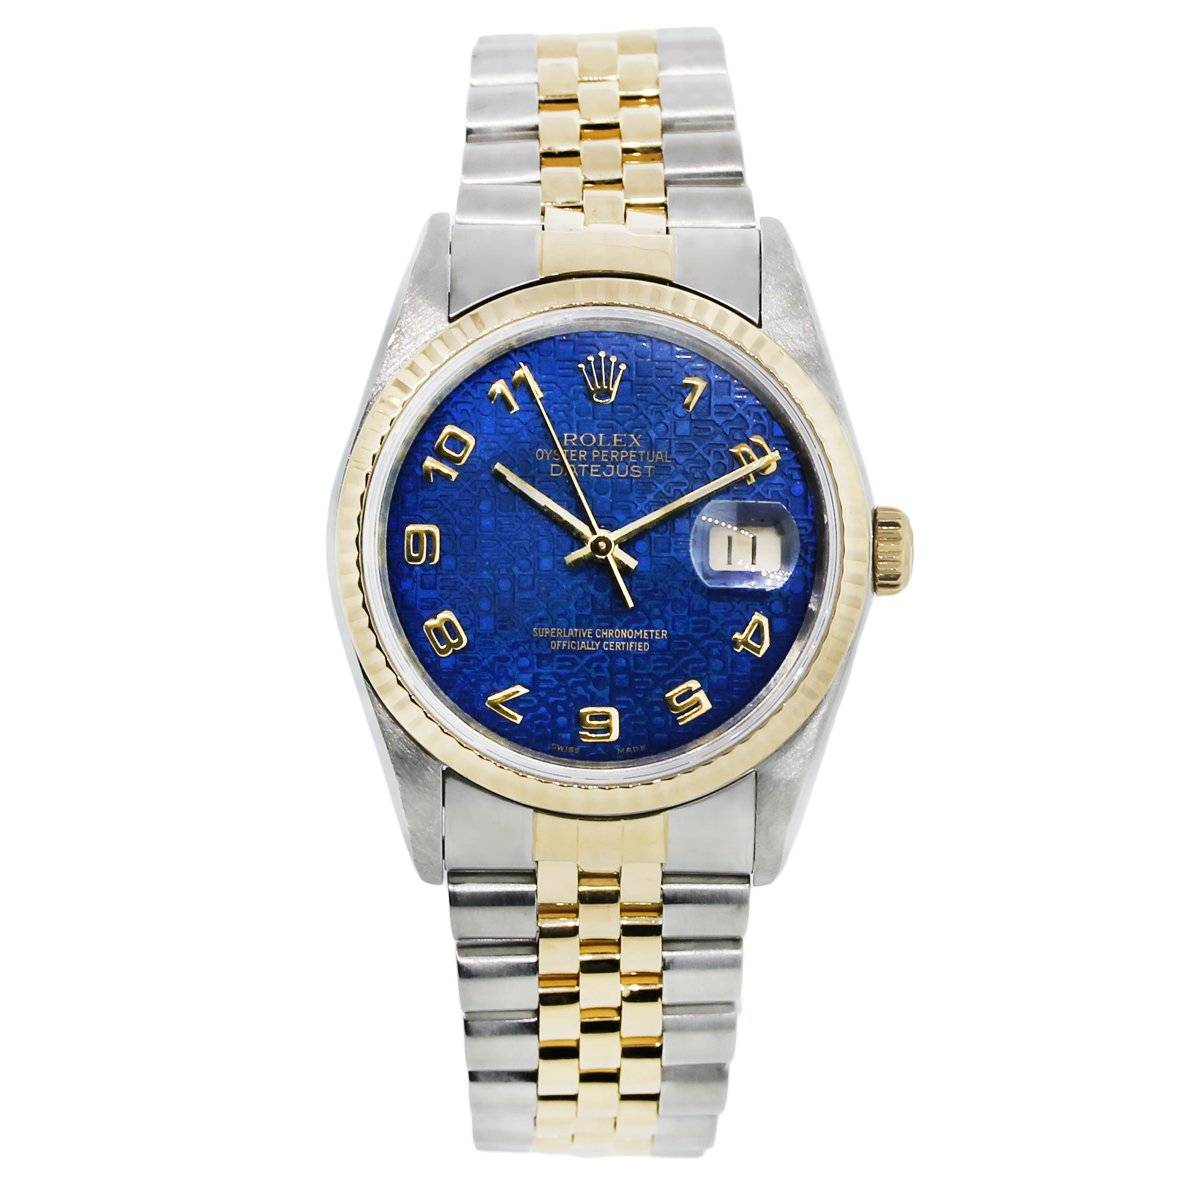 Rolex datejust 16233 two tone blue dial jubilee watch boca raton for Jubilee watch